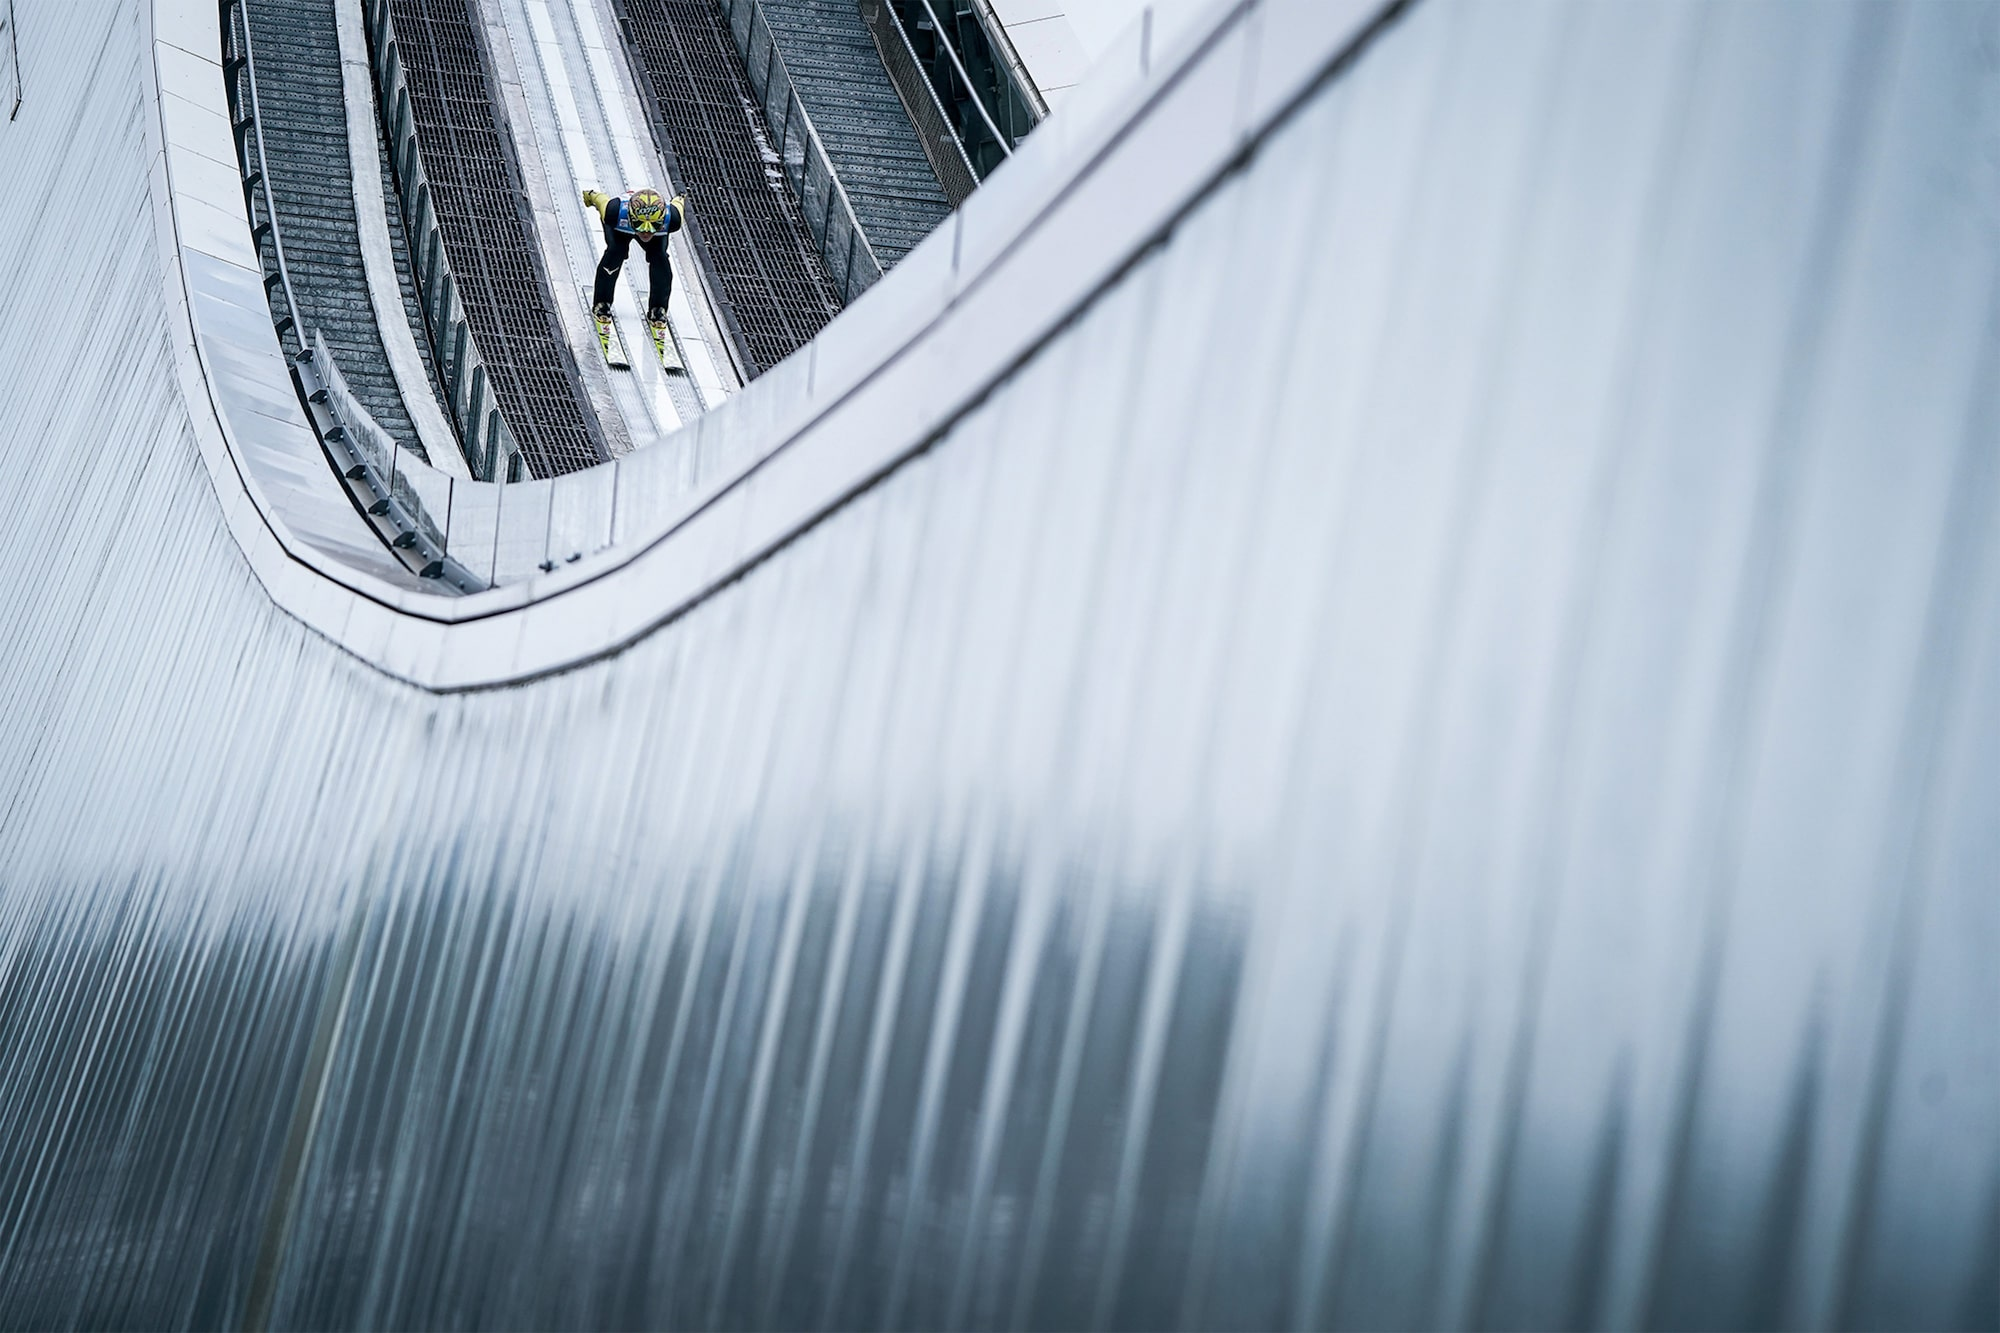 tomasz markowski sony alpha 9 ski jumper hurtles down a track before taking off